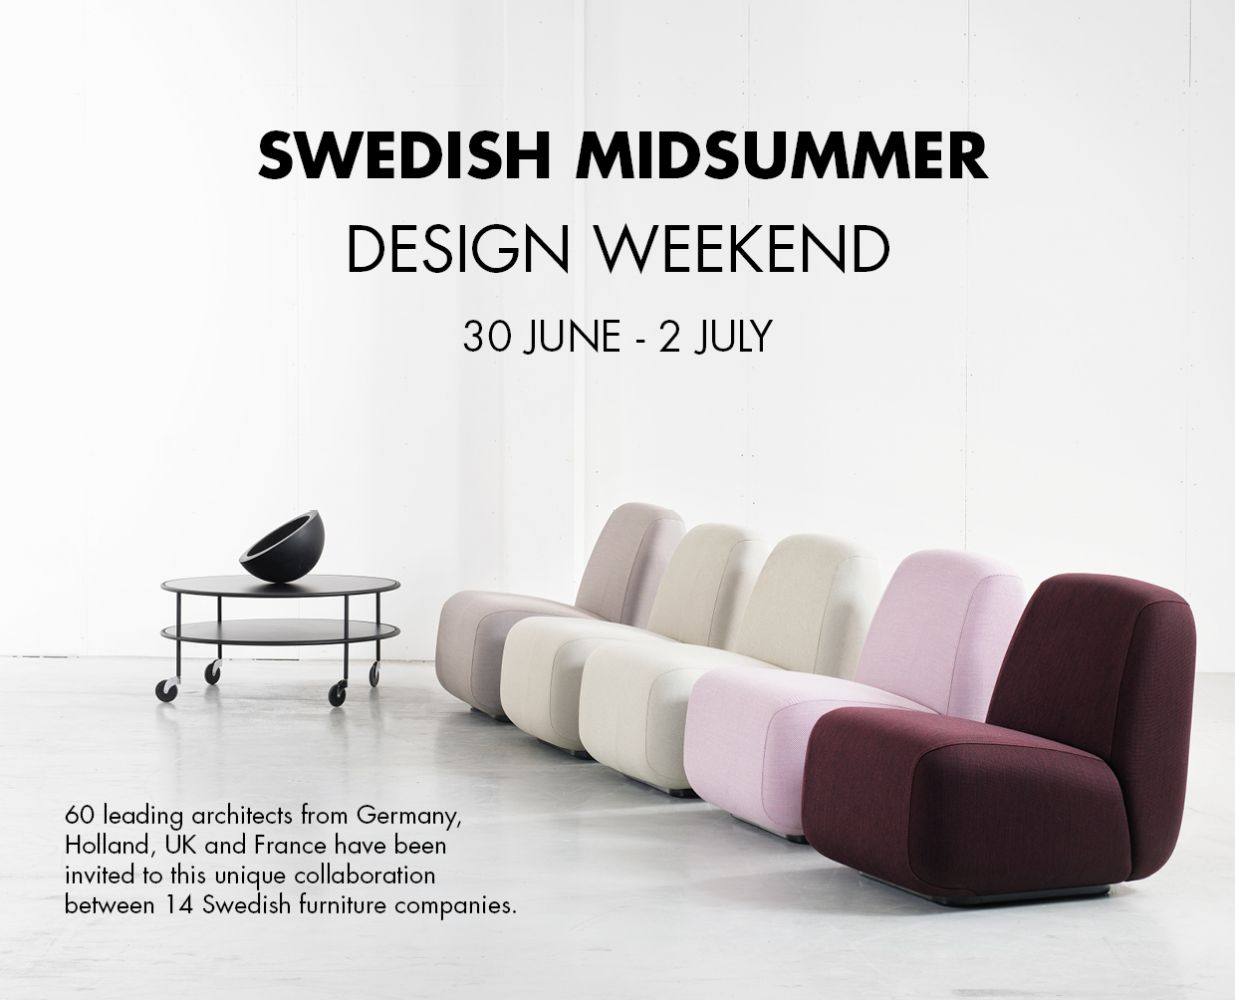 Swedish Midsummer Design Weekend News& Stories Lammhults